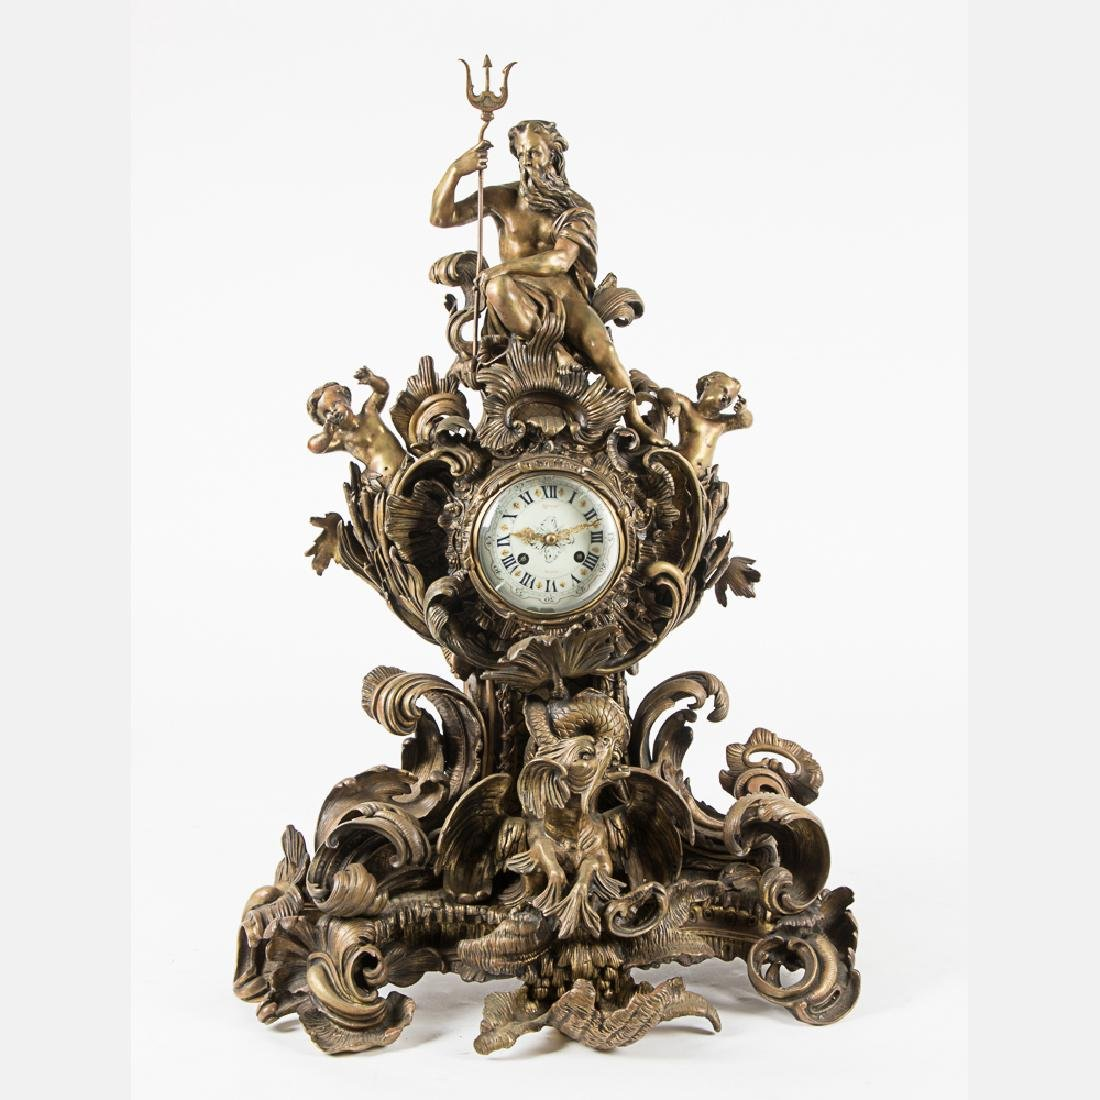 A Rare Tiffany & Co. Bronze Mantel Clock, 20th Century,